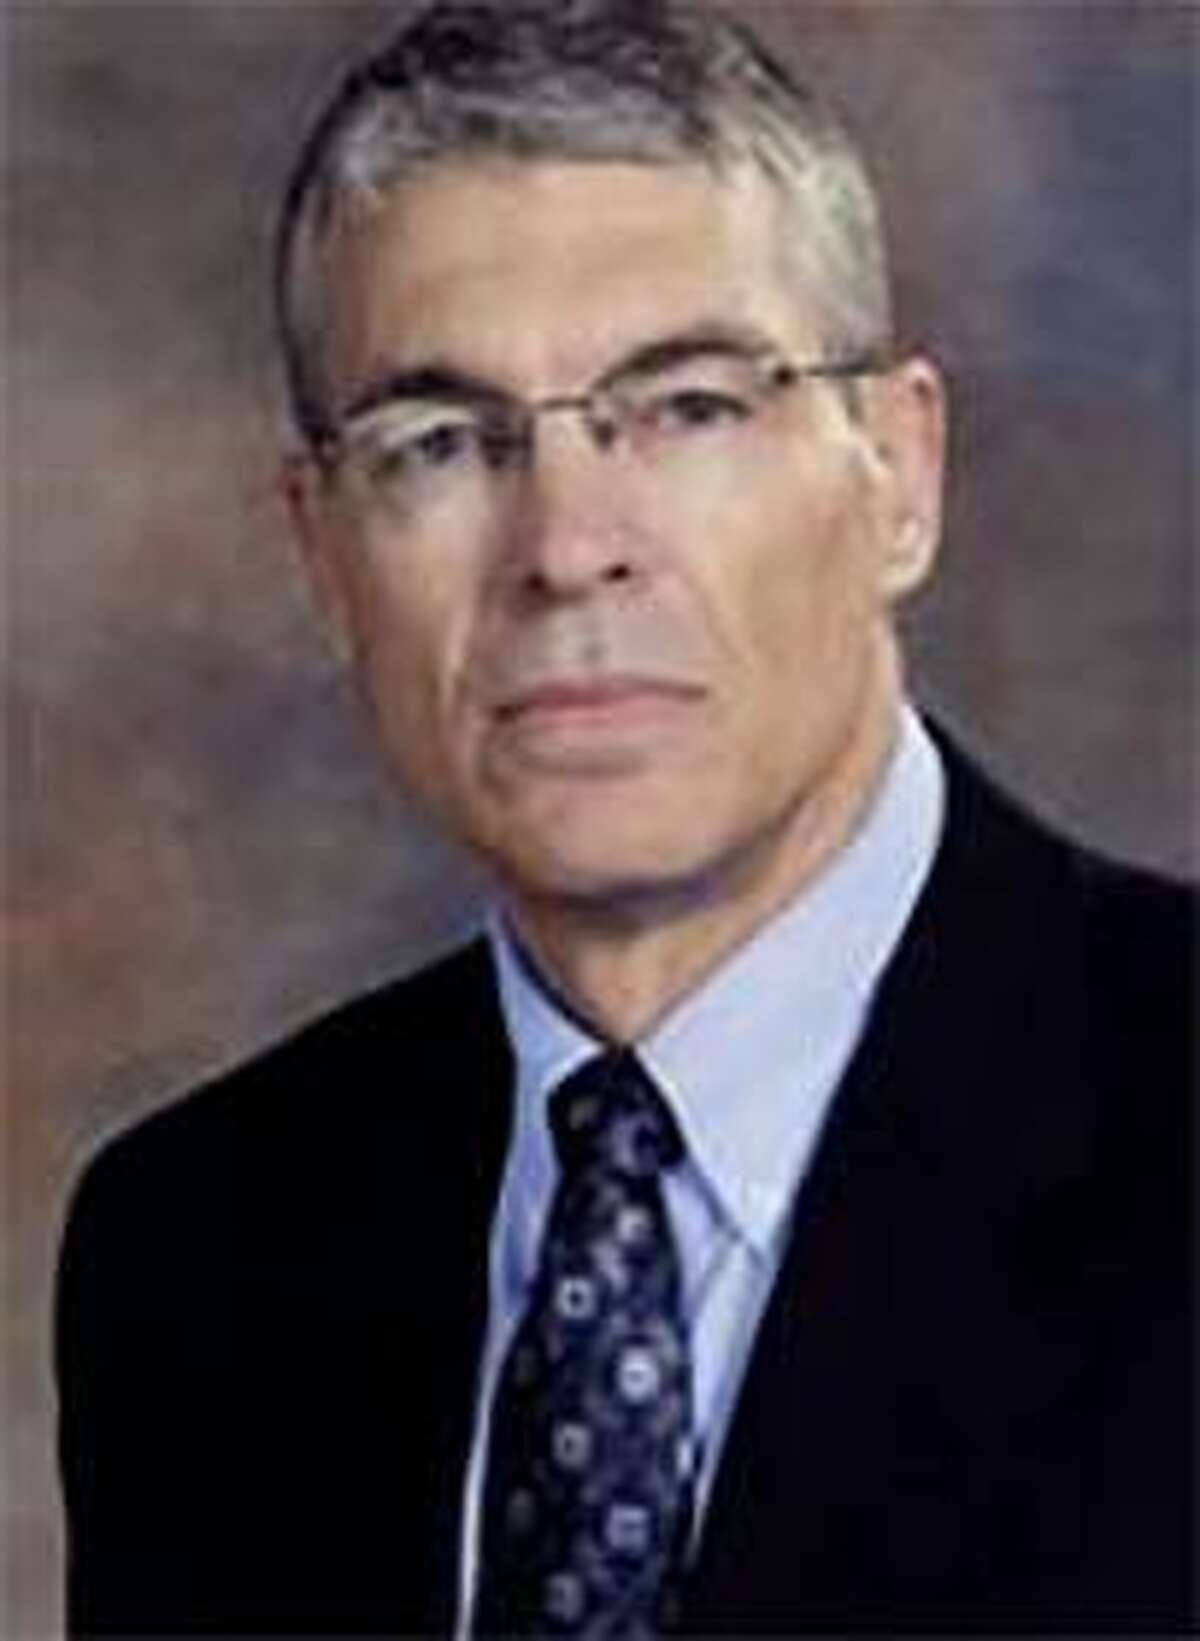 Steven C. McCraw became the director of the Texas Department of Public Safety in August 2009 and also serves as the Governor's Homeland Security Advisor.